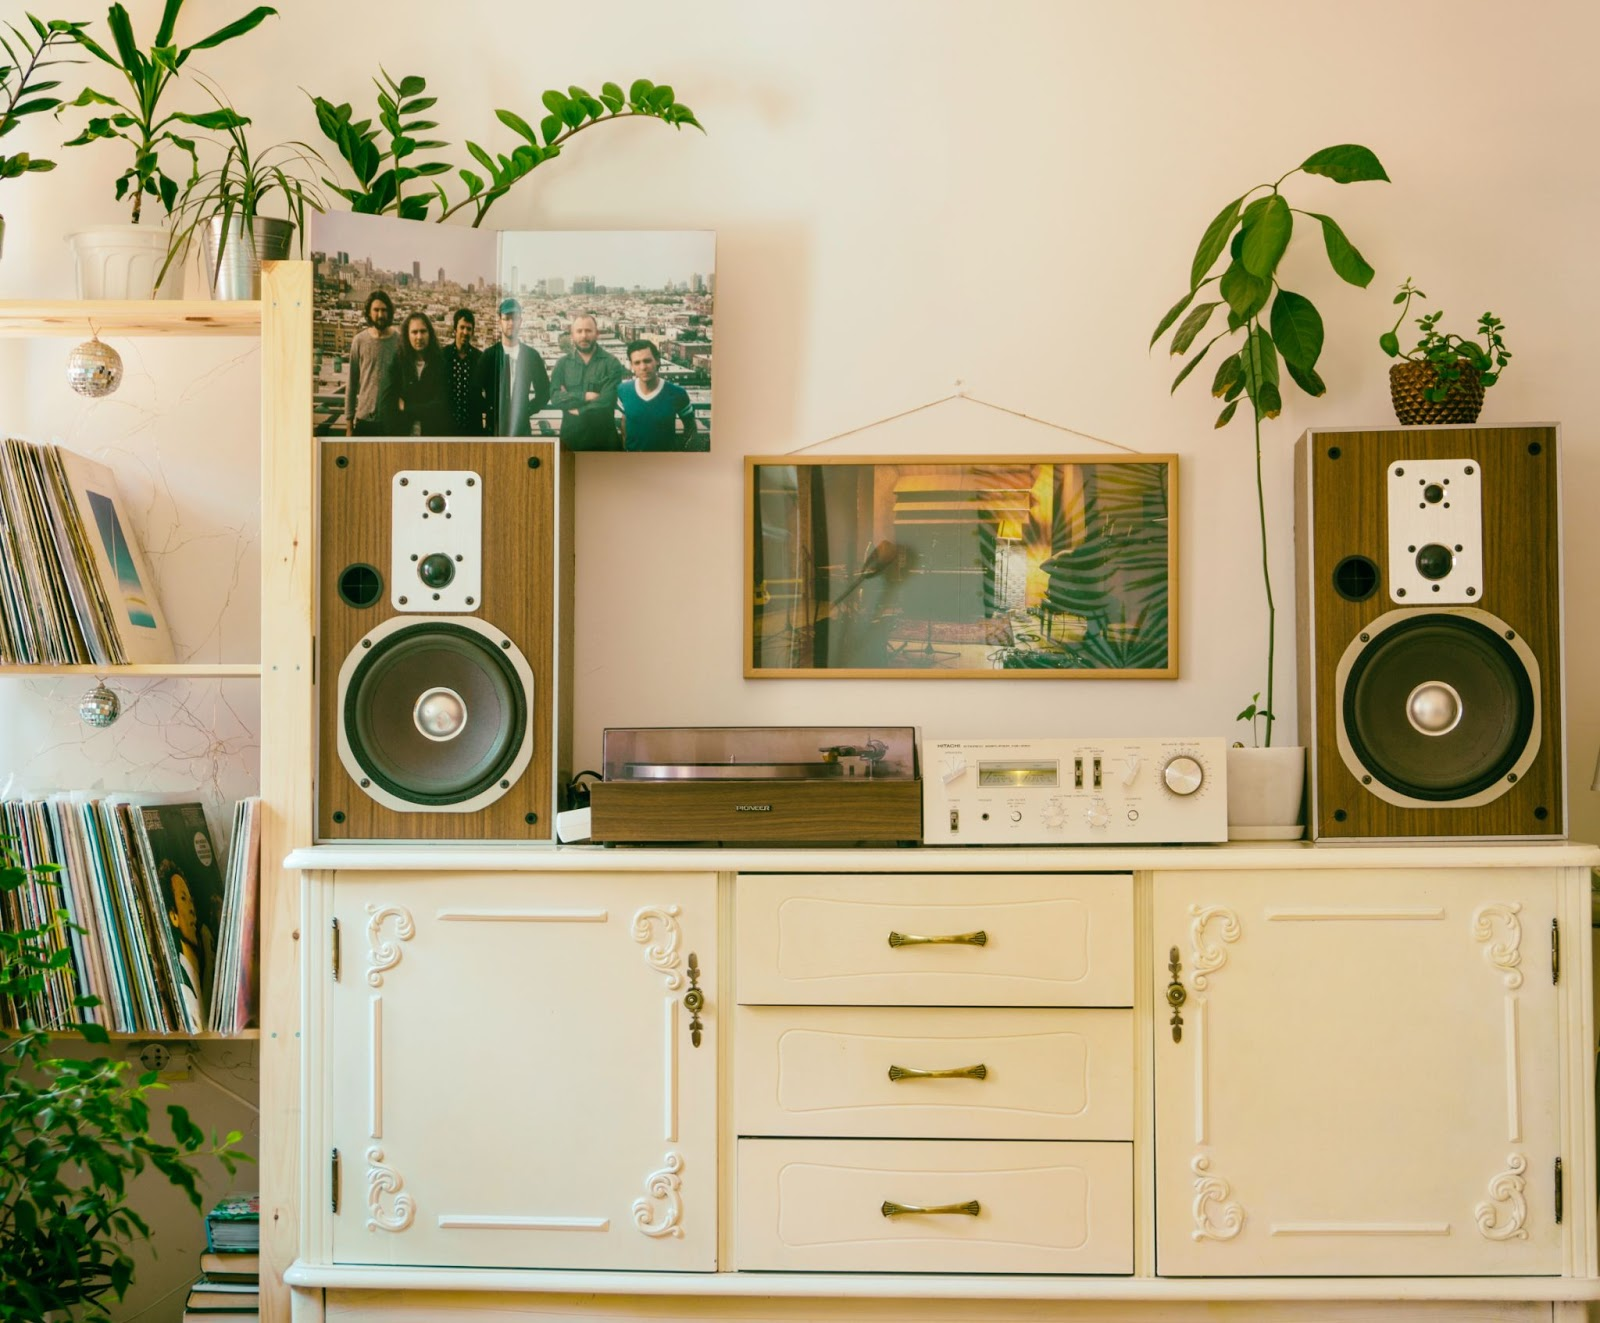 Entertainment center with boom boxes and potted plants as decoration around it.,